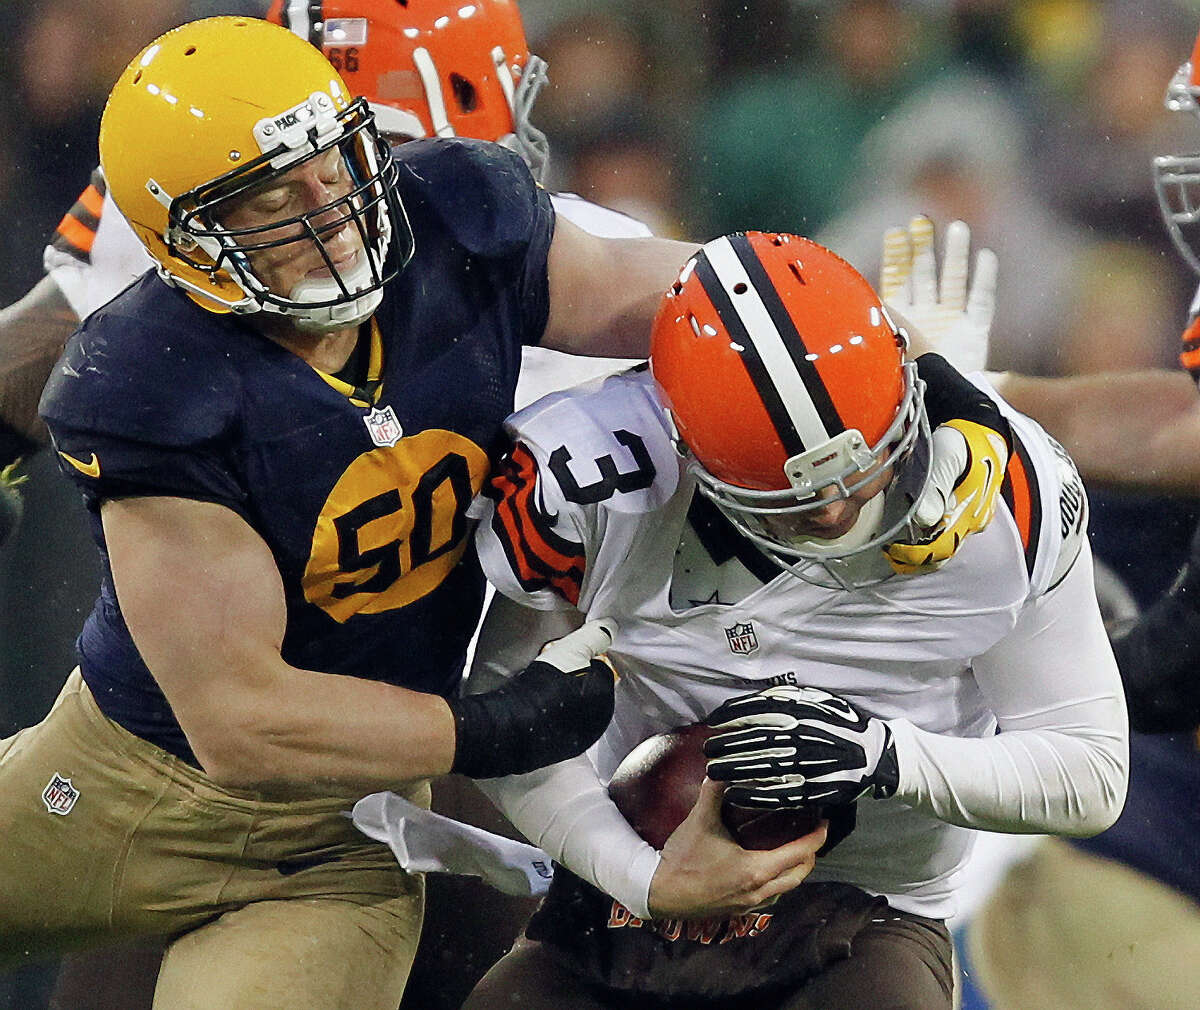 Green Bay Packers' A.J. Hawk (50) is called for a fface mask penalty as he tries to sack Cleveland Browns quarterback Brandon Weeden (3) during the second half of an NFL football game Sunday, Oct. 20, 2013, in Green Bay, Wis.